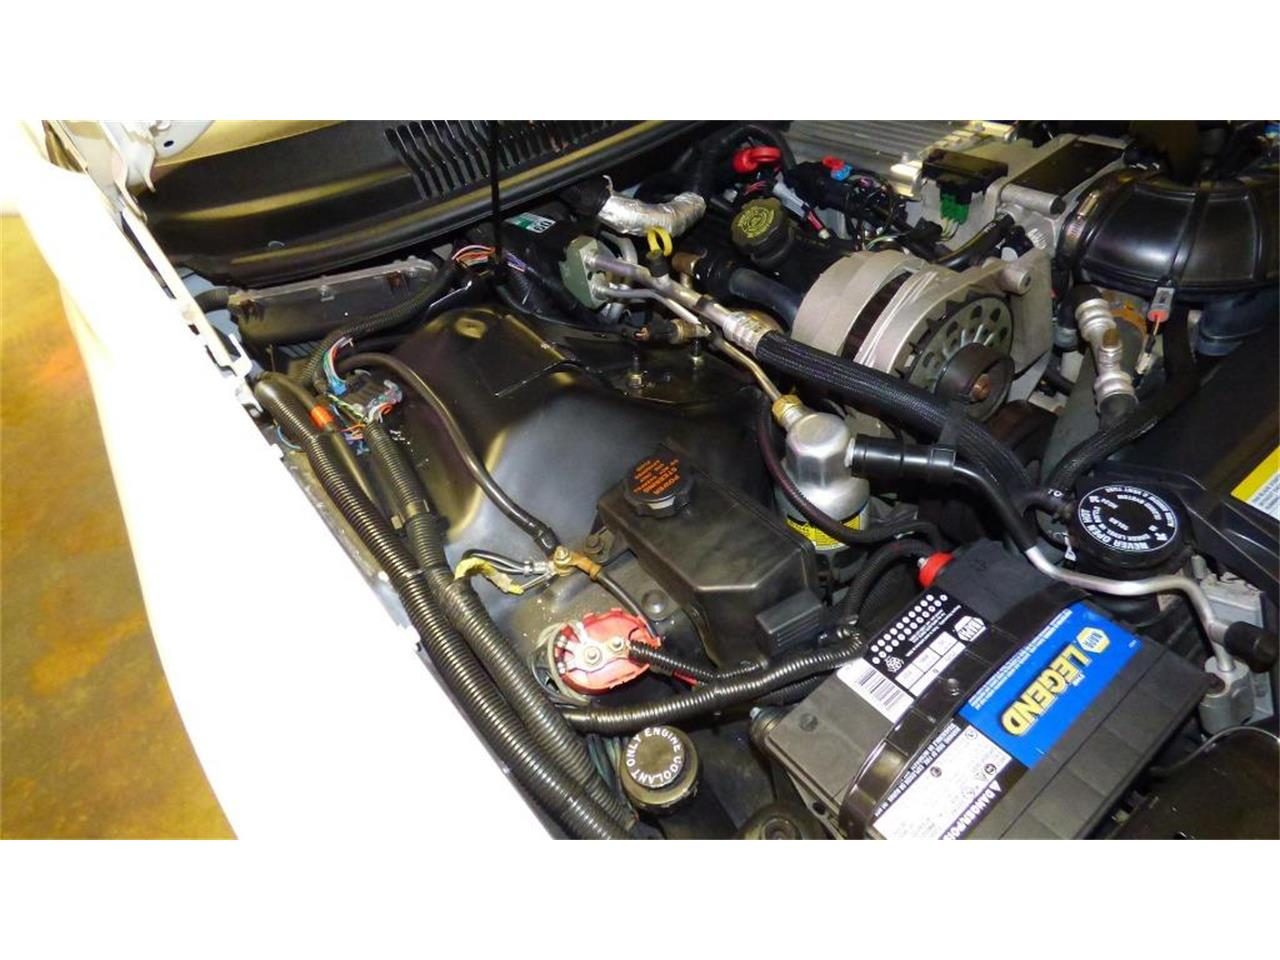 Large Picture of 1995 Camaro Z28 located in Georgia - $22,995.00 Offered by Cruisers Specialty Autos - Q3QG